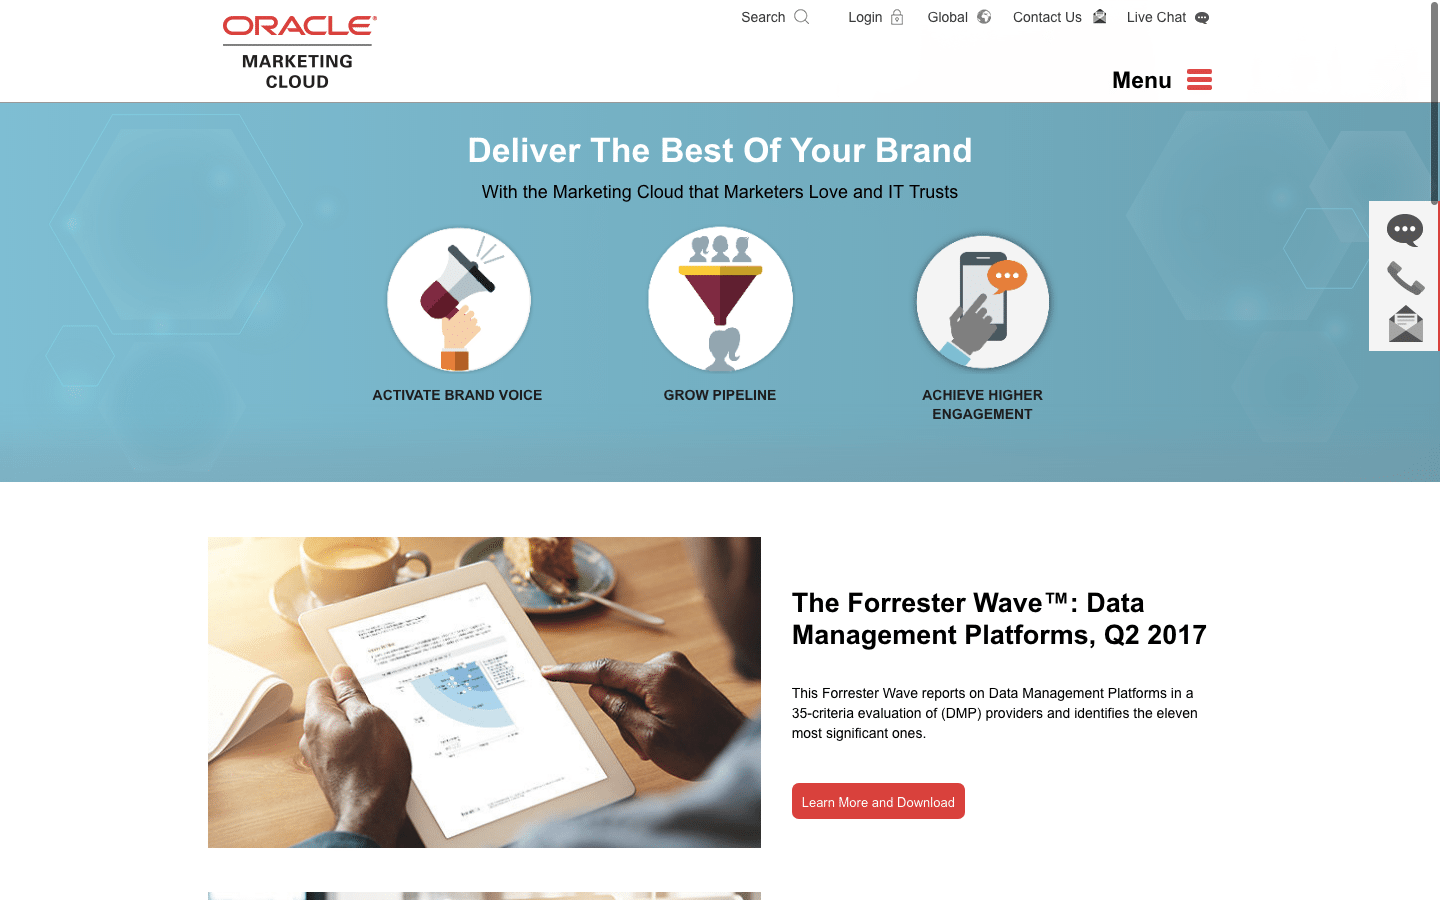 Oracle Marketing Cloud for sales team